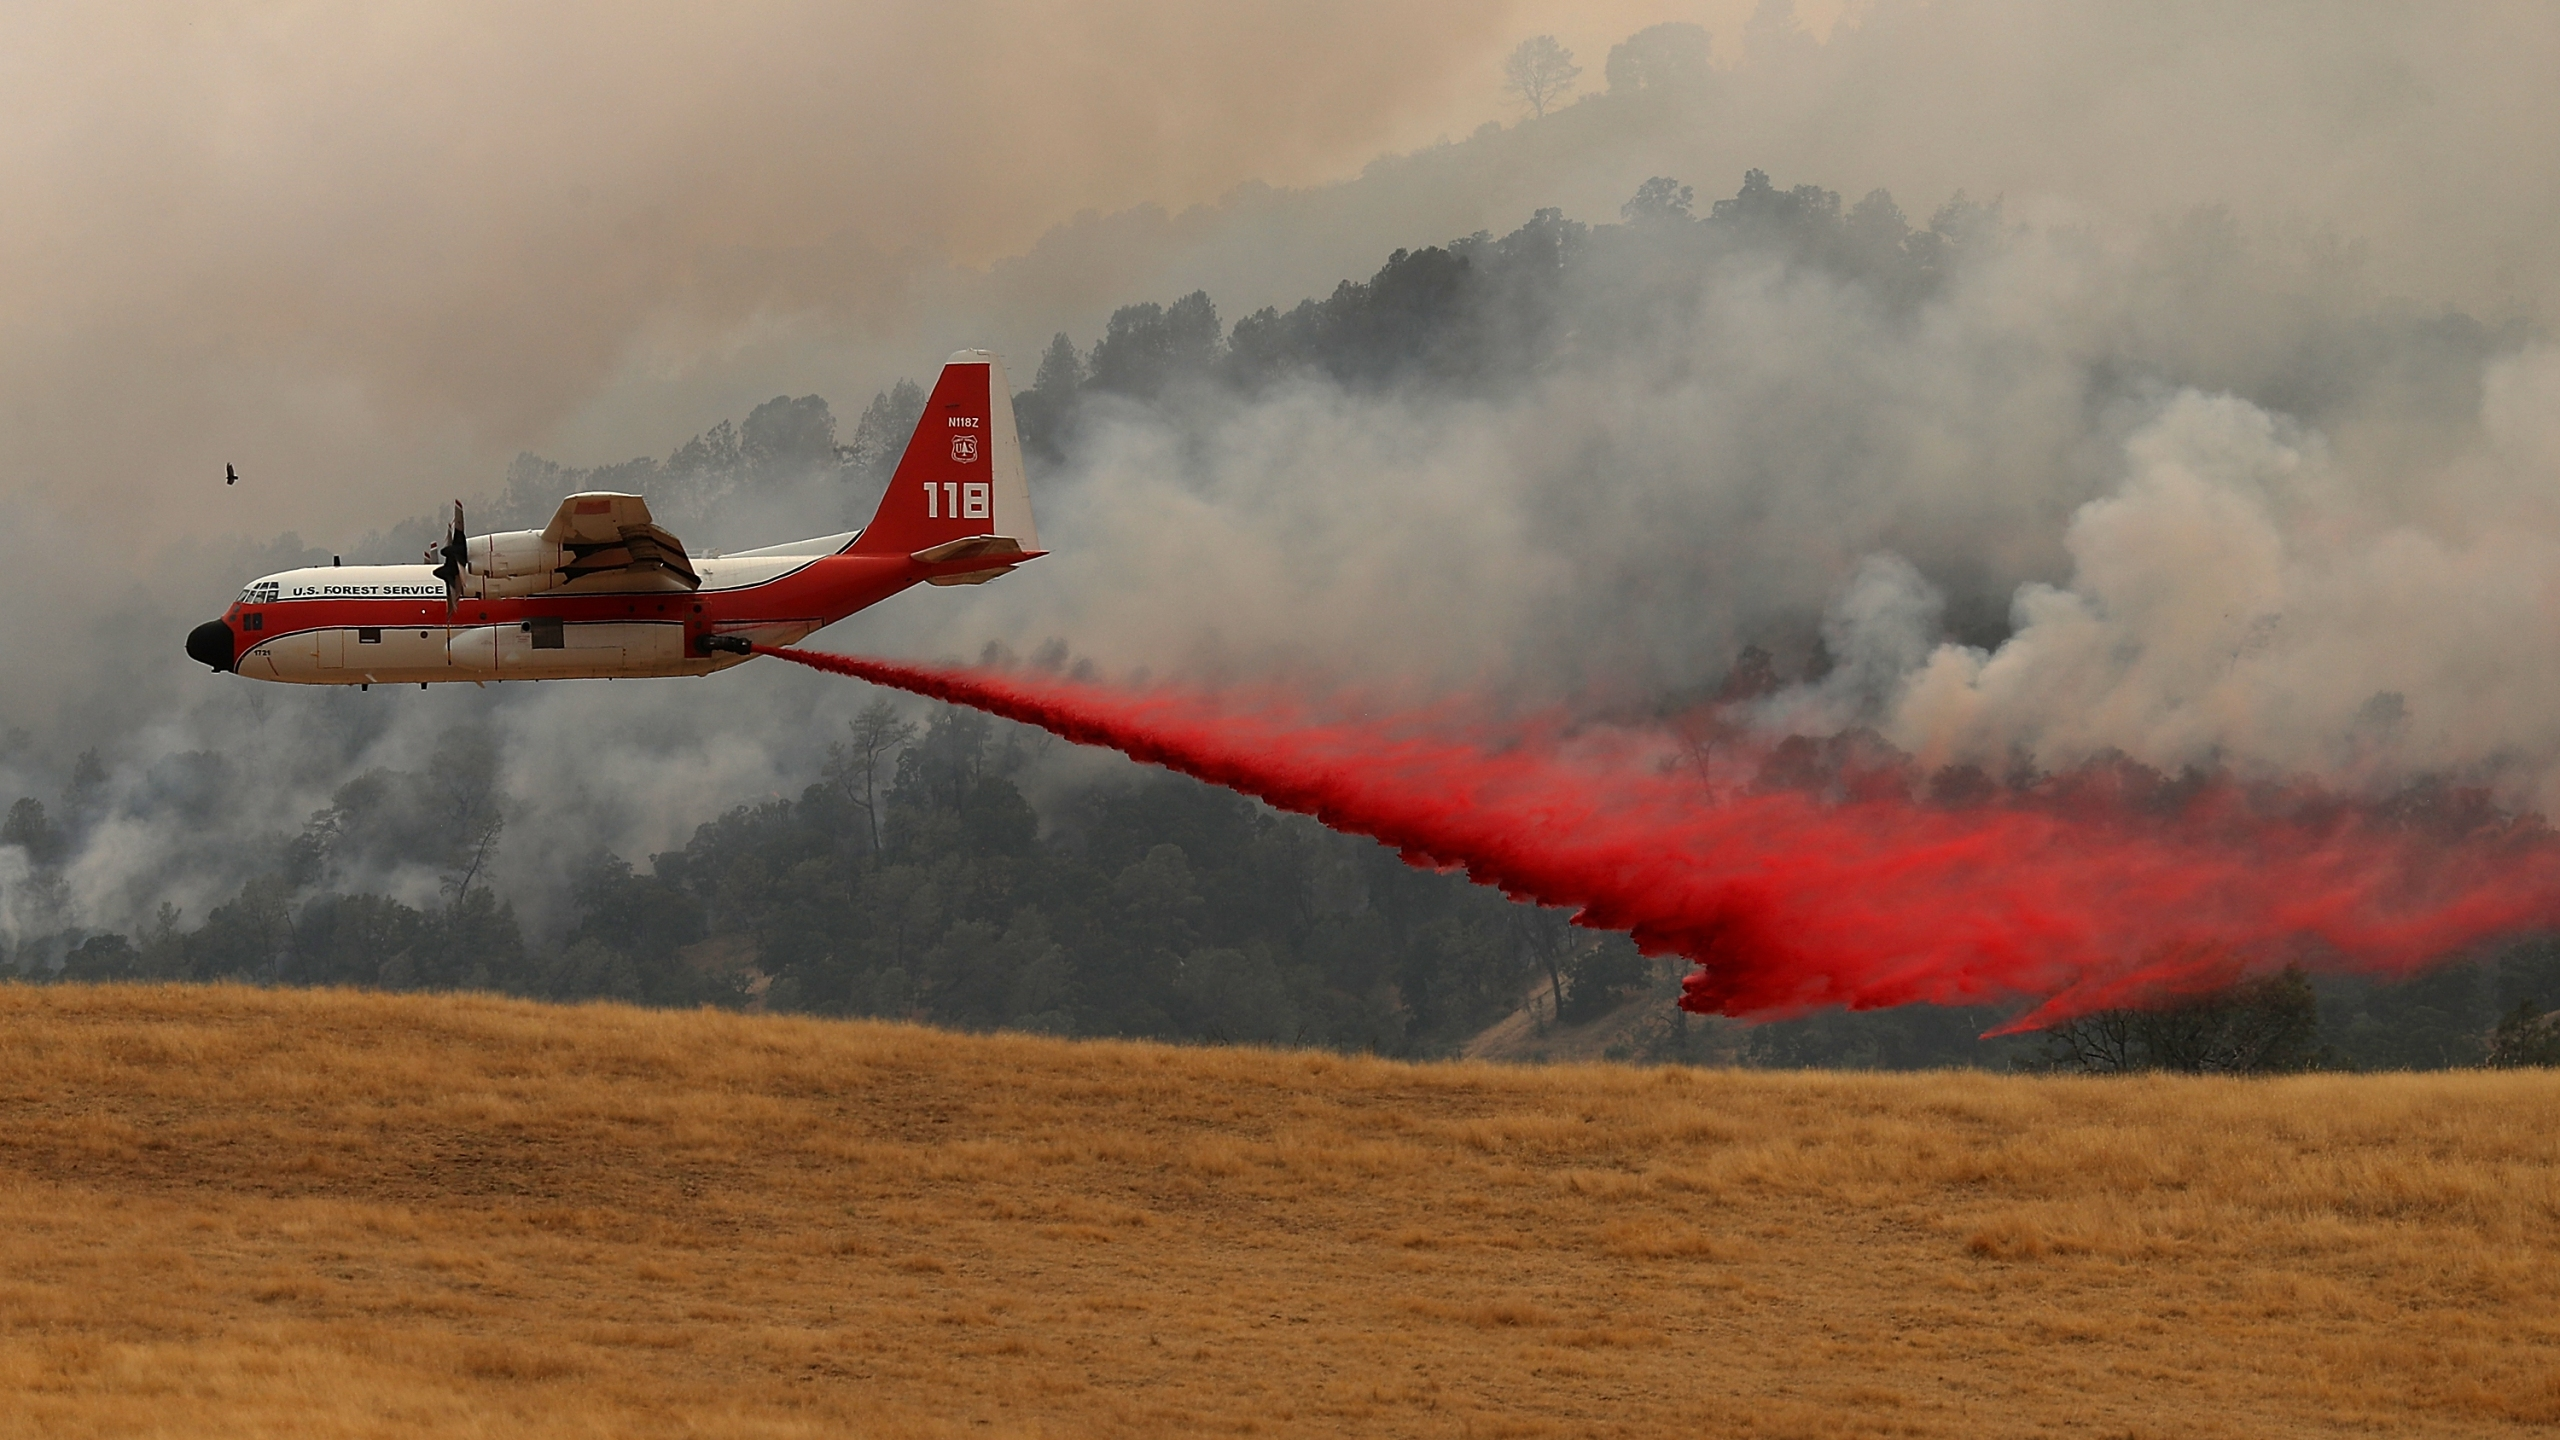 A firefighting air tanker drops Foscheck fire retardant on a hillside ahead of the County Fire on July 2, 2018 in Esparto, California. (Credit: Justin Sullivan/Getty Images)